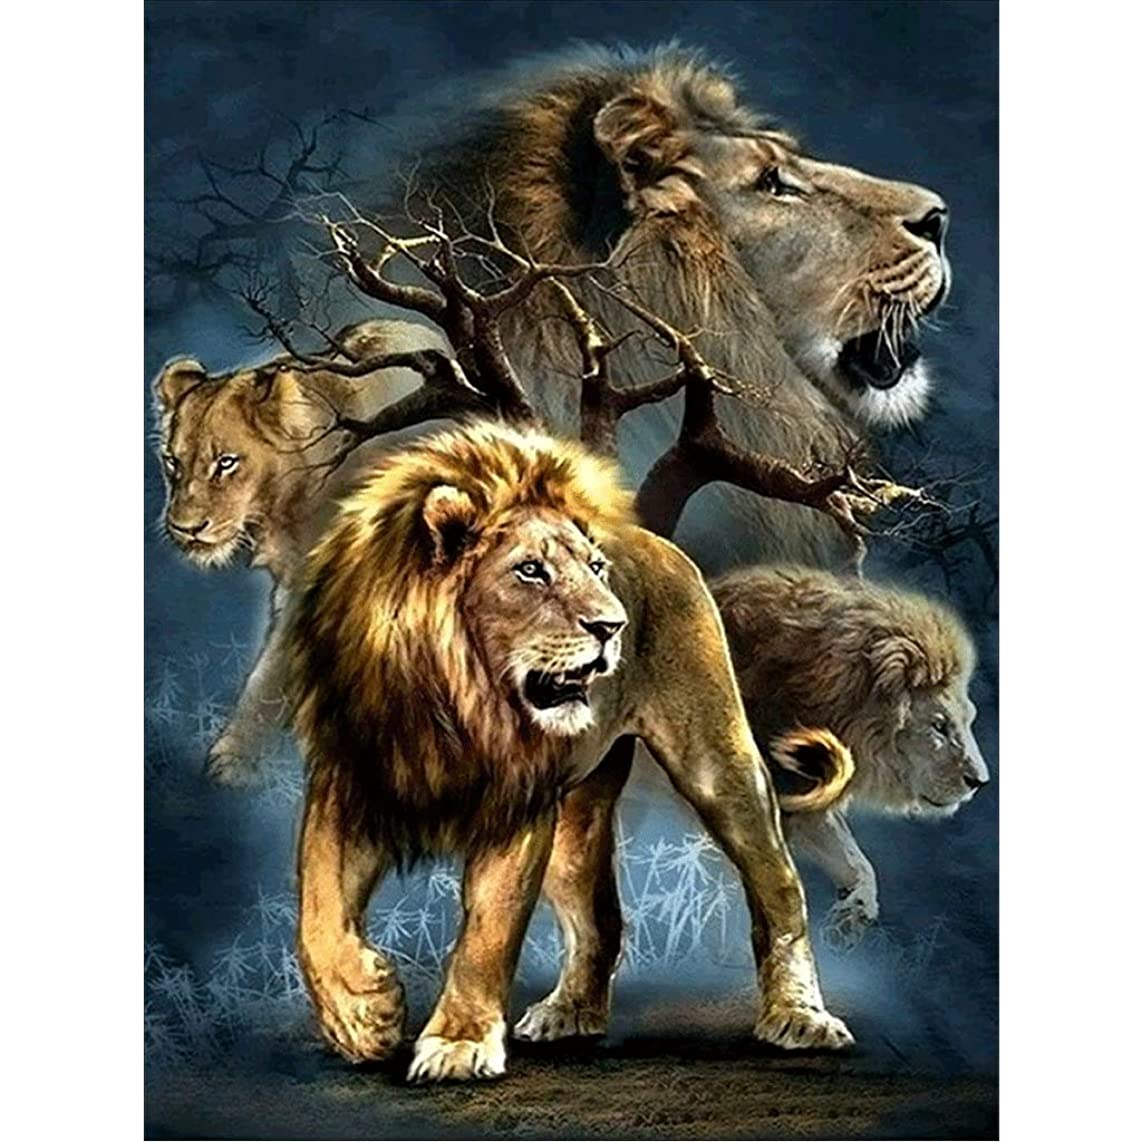 DIY Diamond Painting Kit Full Drill Crystal Lion King, Round Diamond Painting, DIY 5D Rhinestone Embroidery Cross Stitch Kits Supply Arts Craft Canvas Wall Decor Stickers Home Decor 12x16 inches